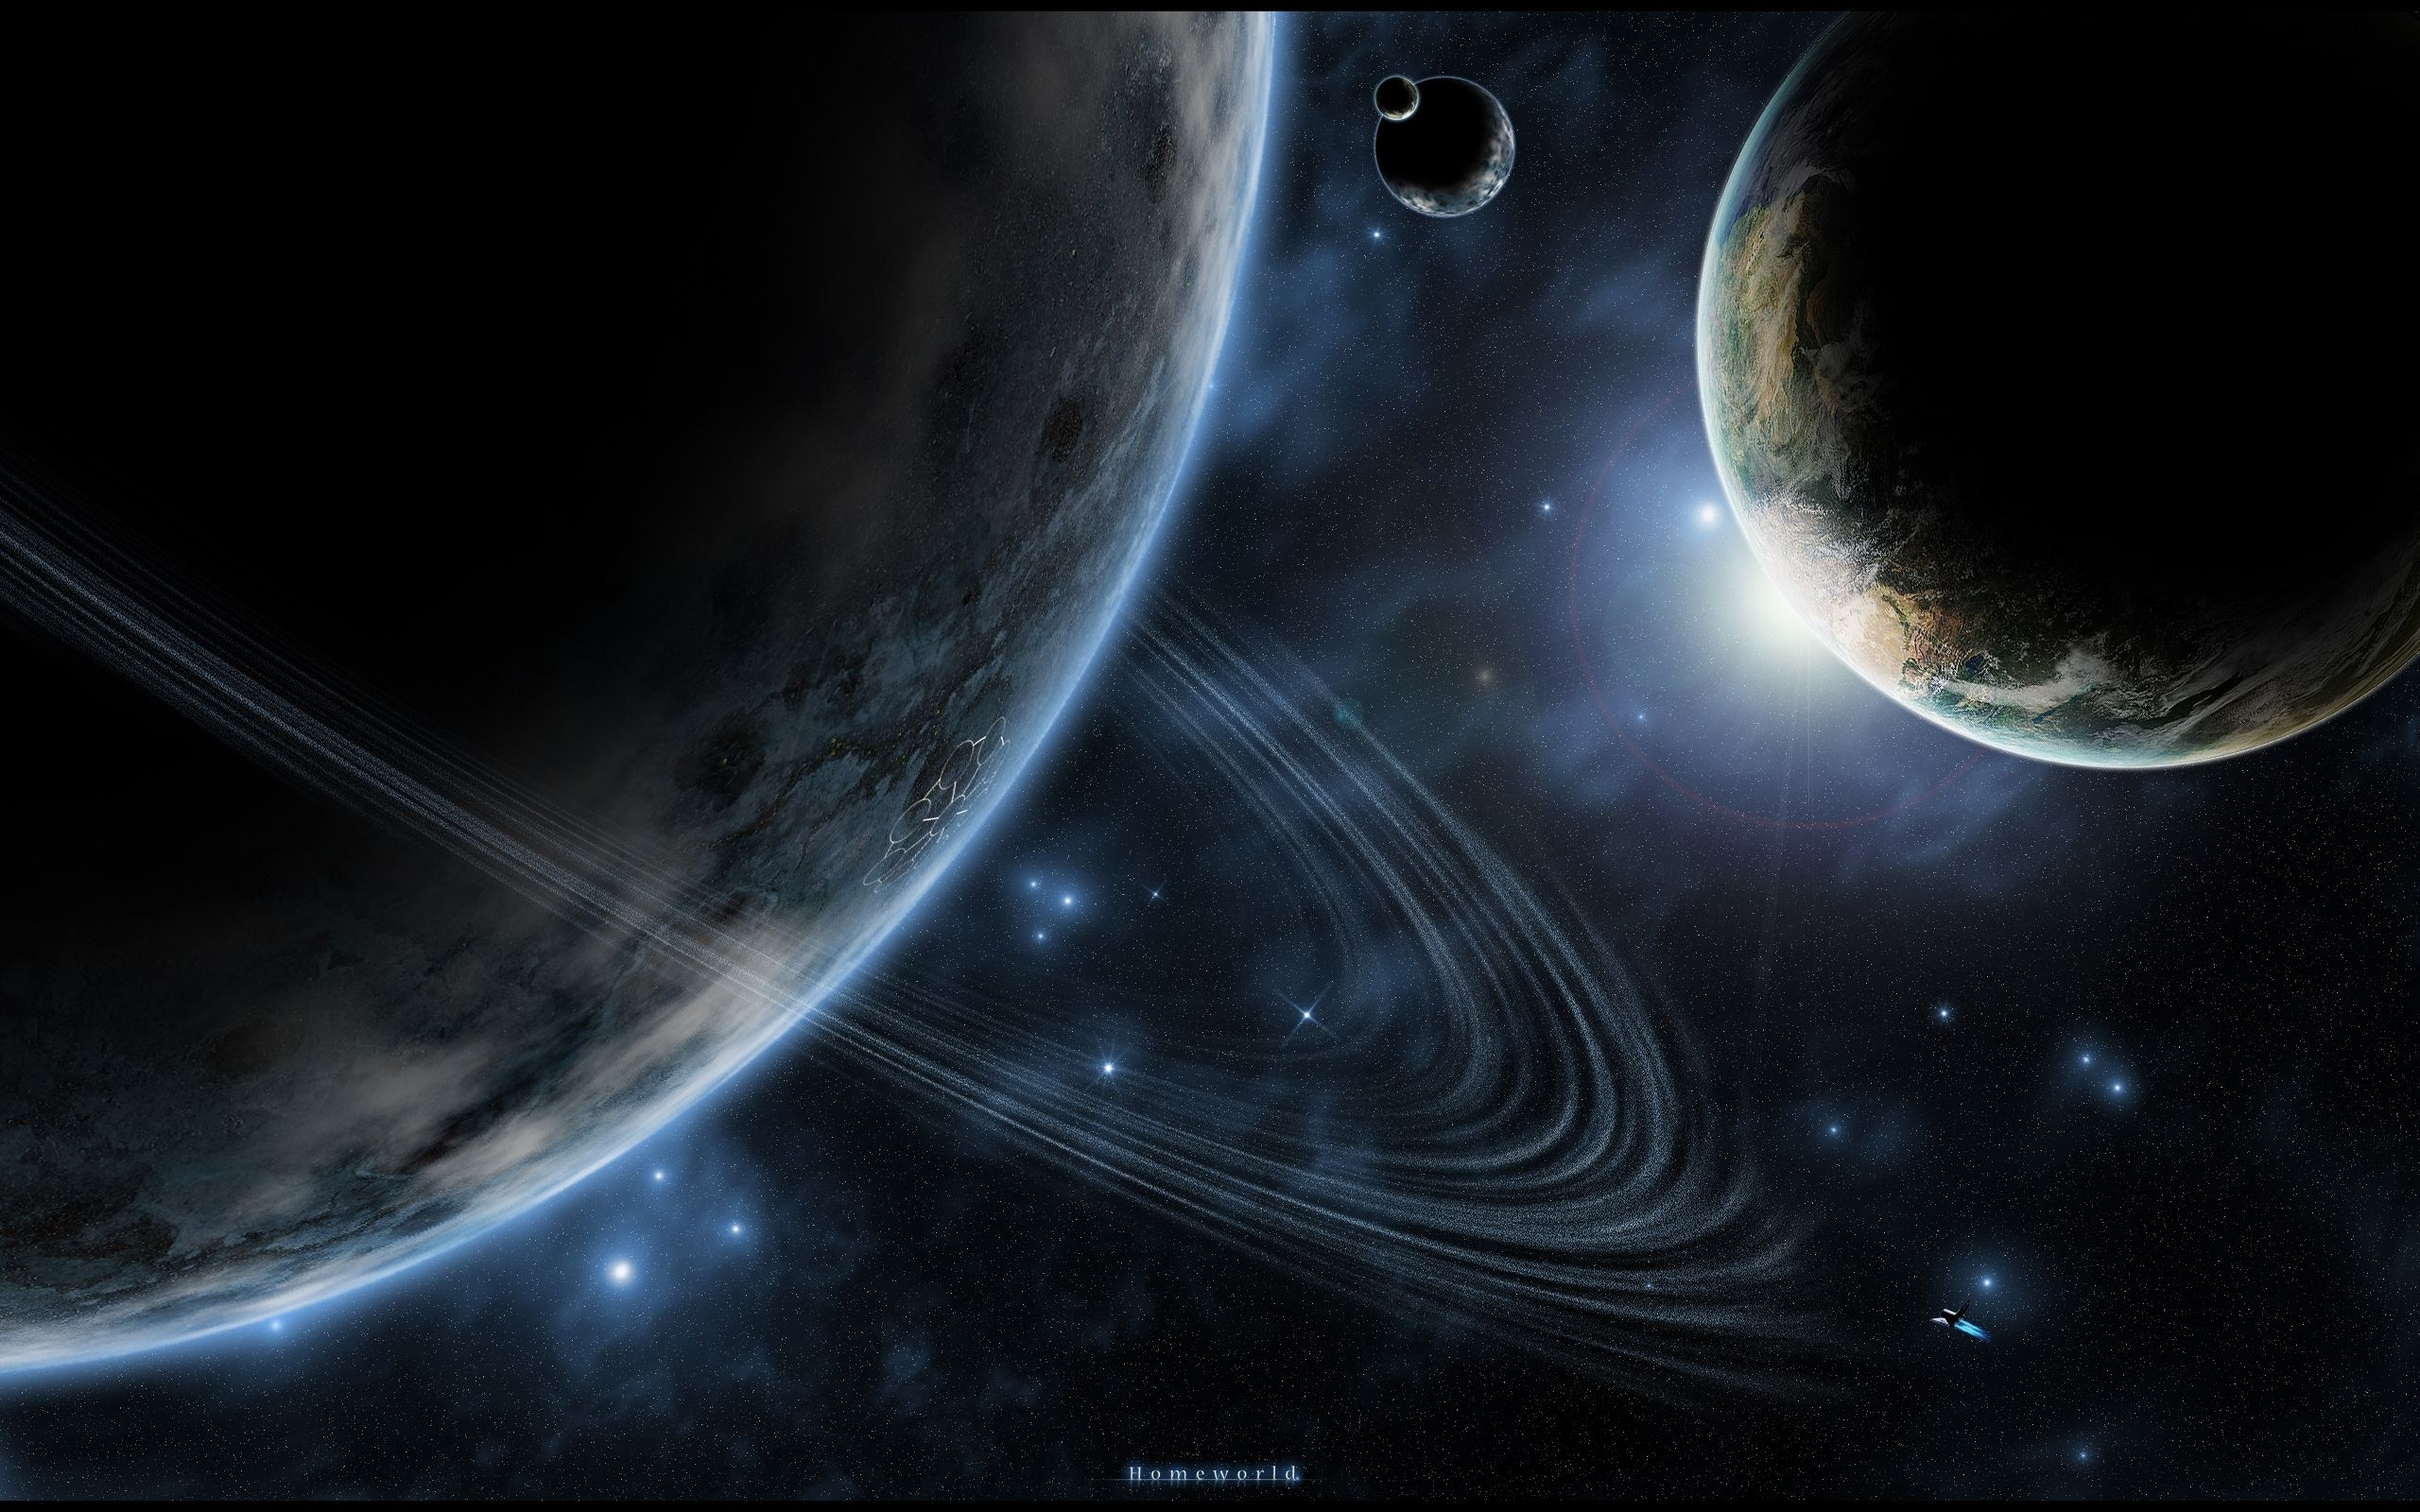 Space Art Wallpaper   Space Wallpaper 7076627 2560x1600